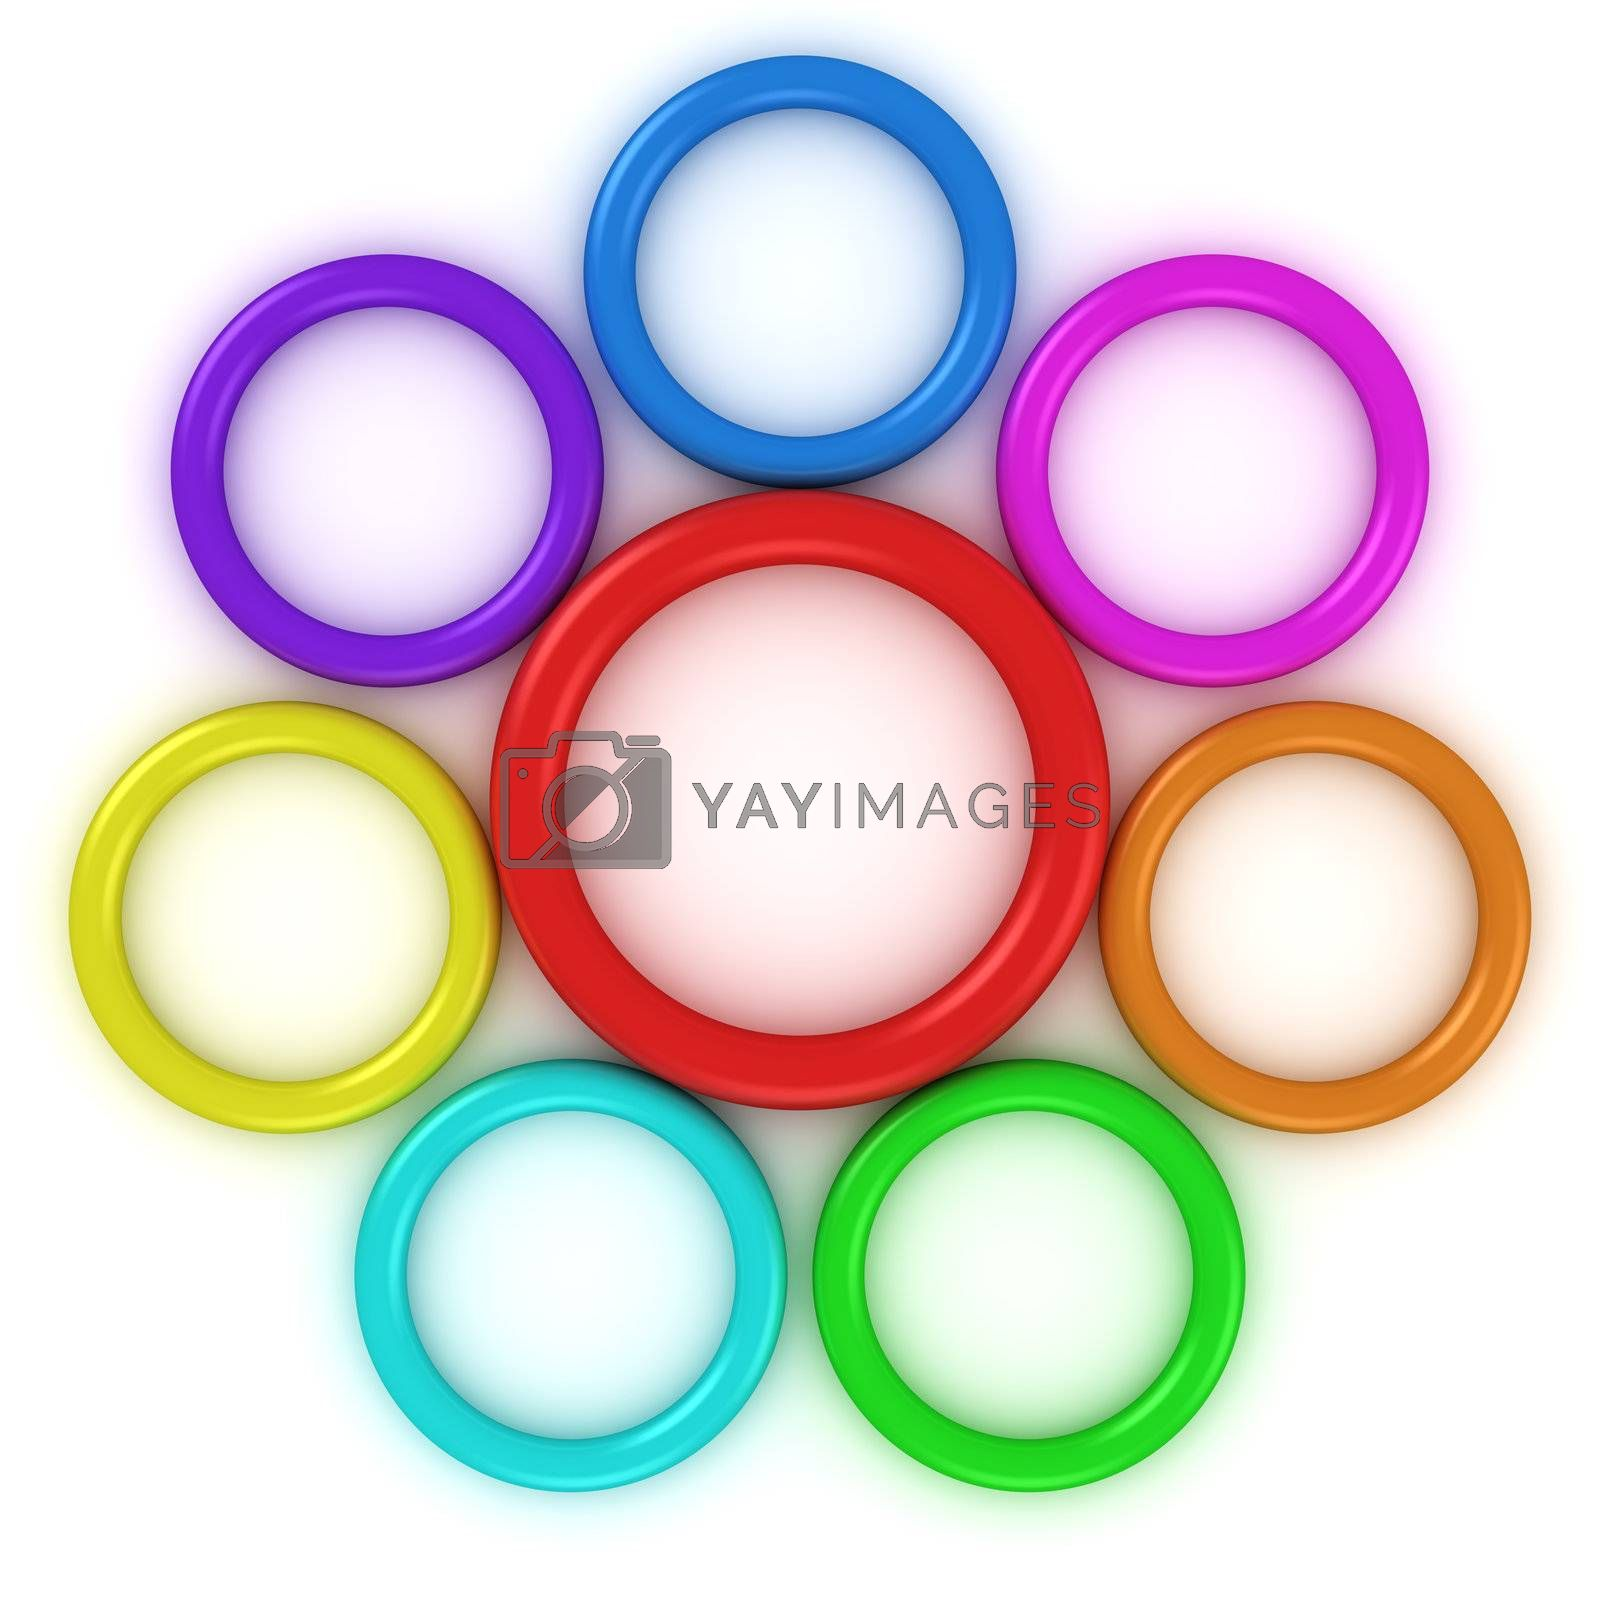 Rings of rainbow colors in the form of daisy flower